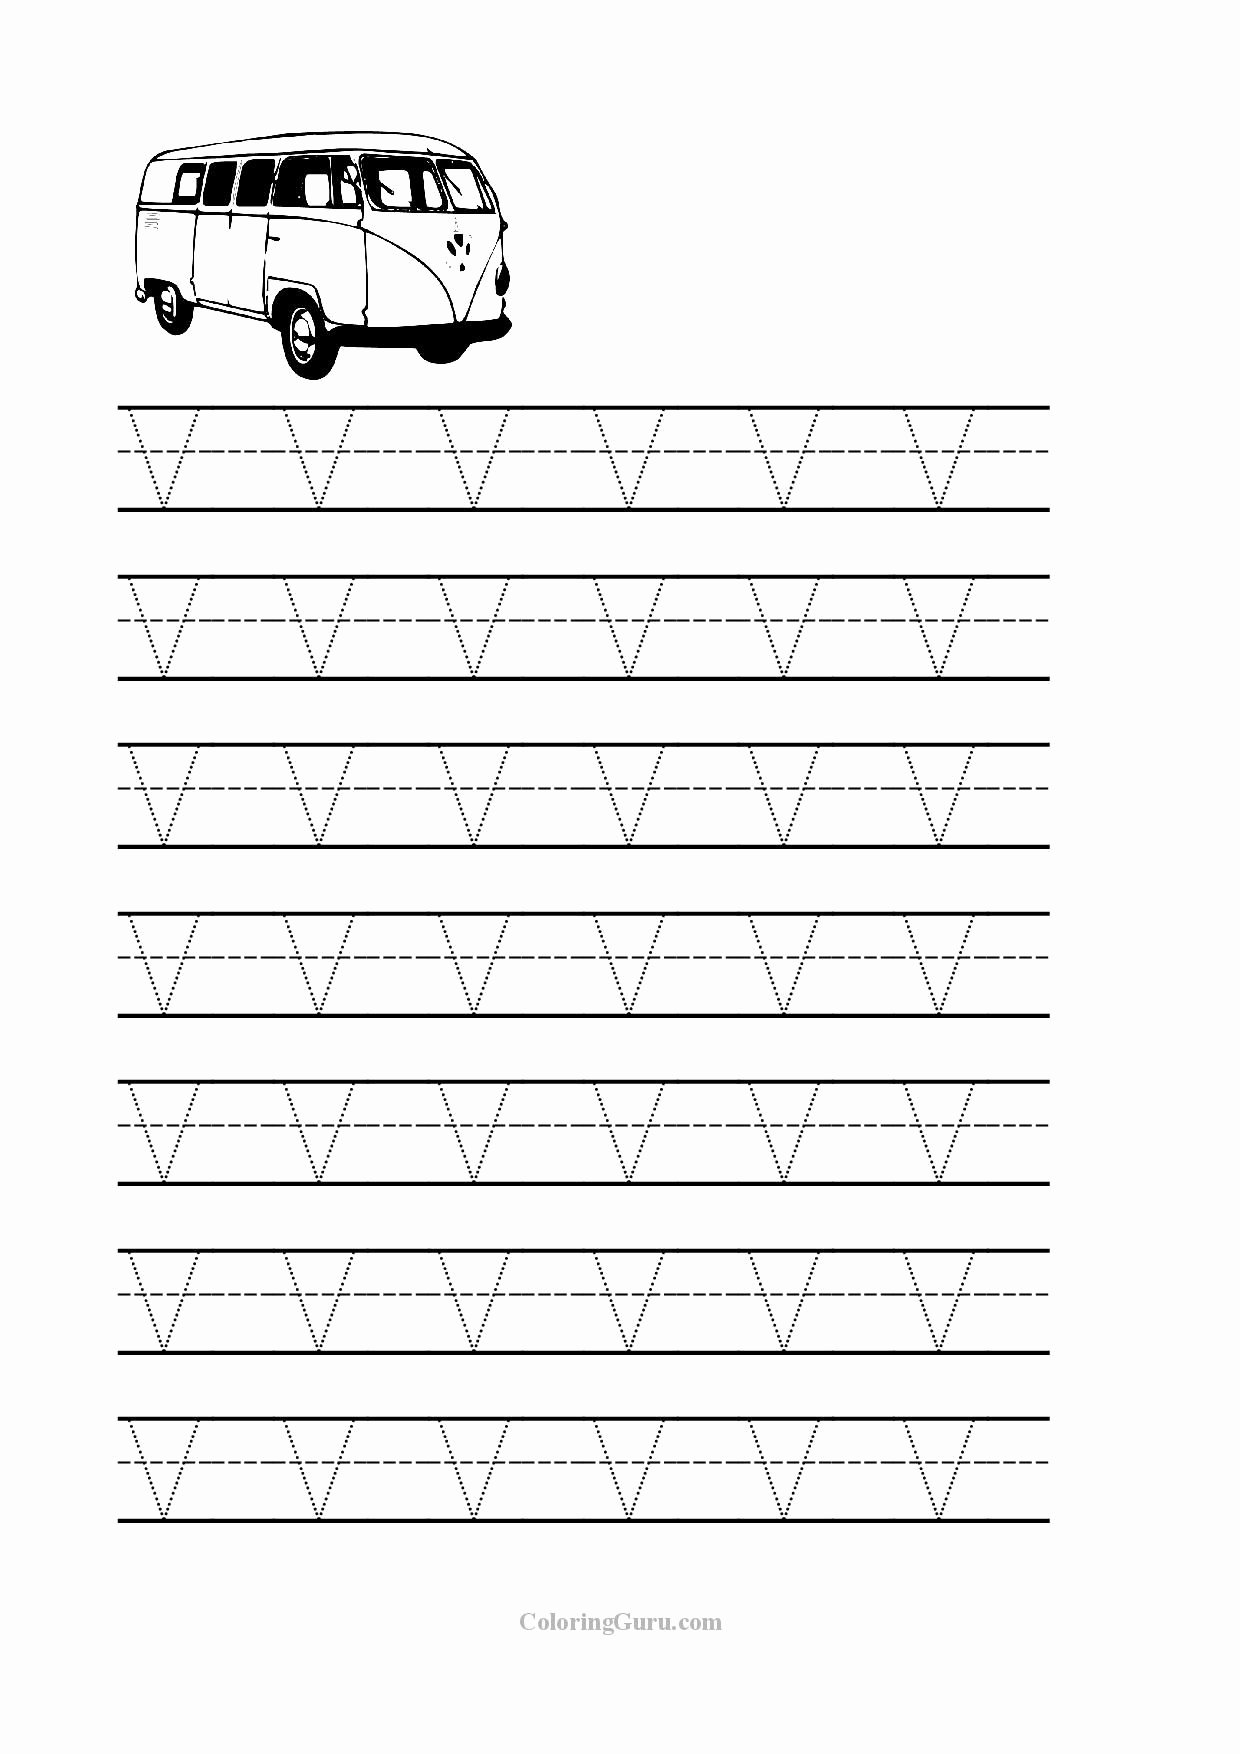 Letter V Worksheets for Preschoolers Beautiful Free Printable Tracing Letter V Worksheets for Preschool